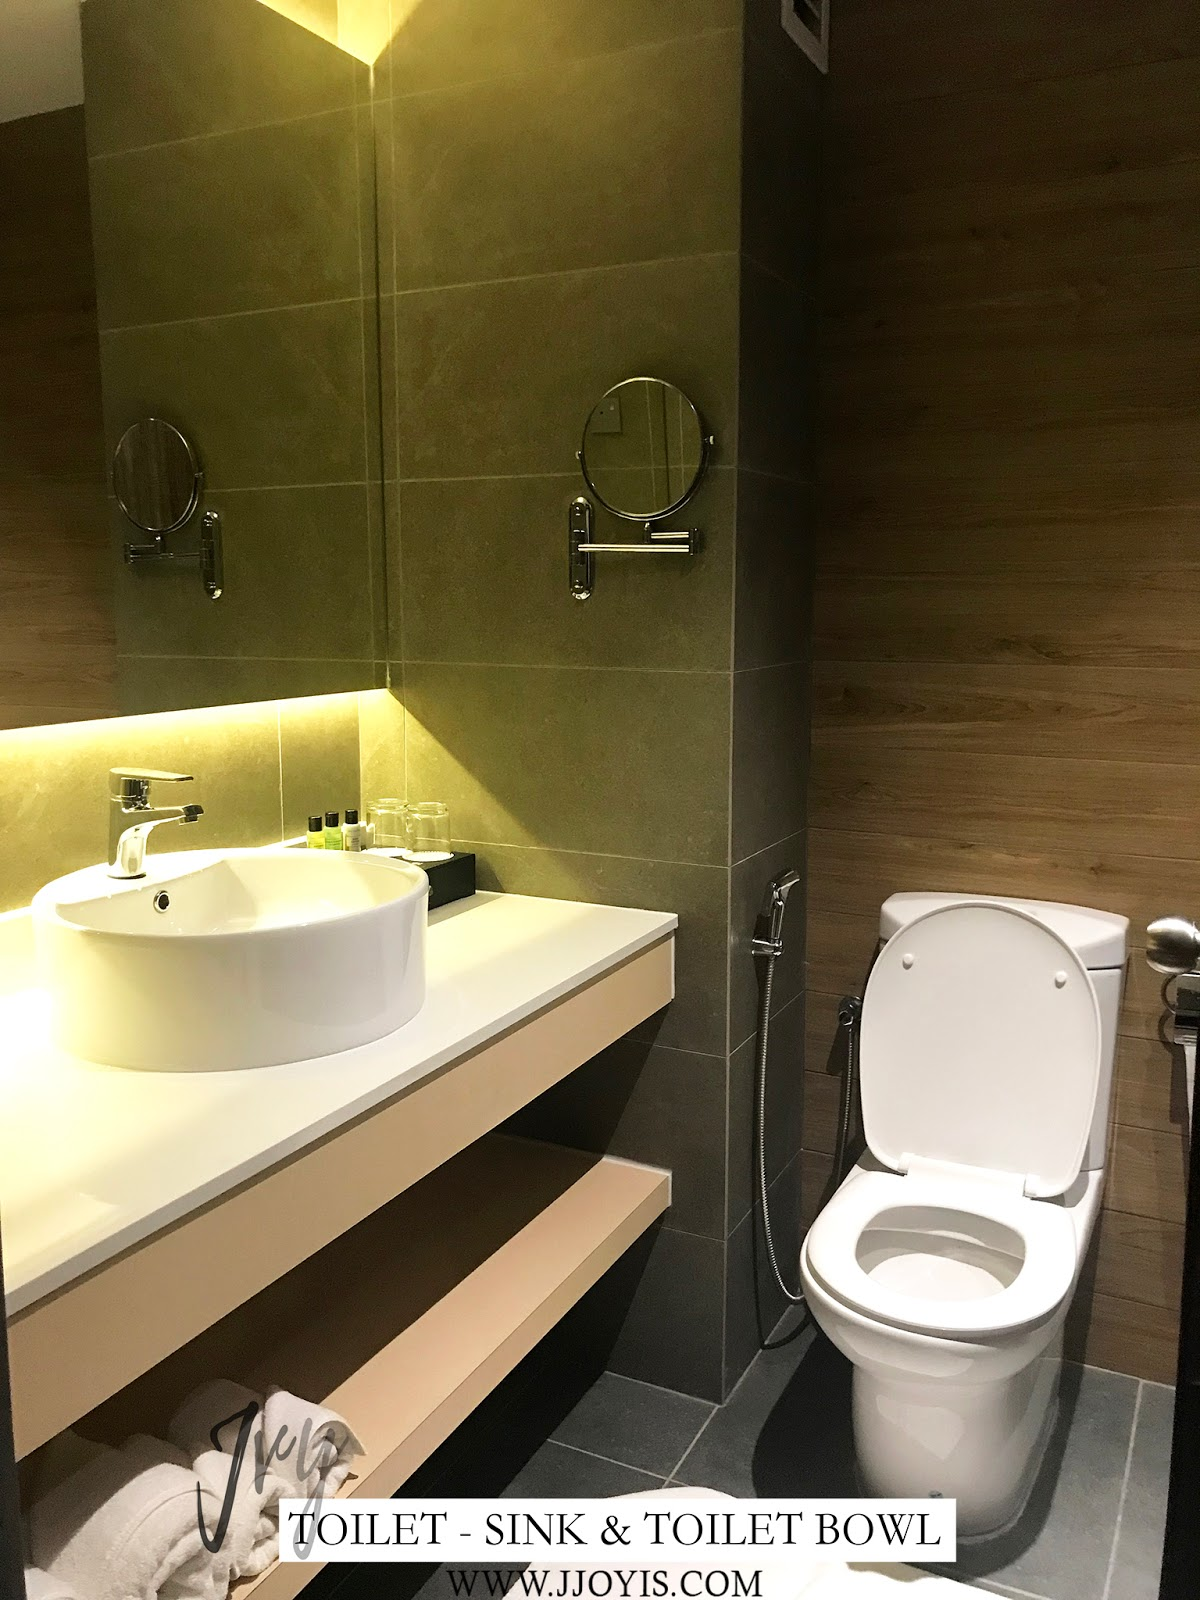 toilet trove hotel jb review